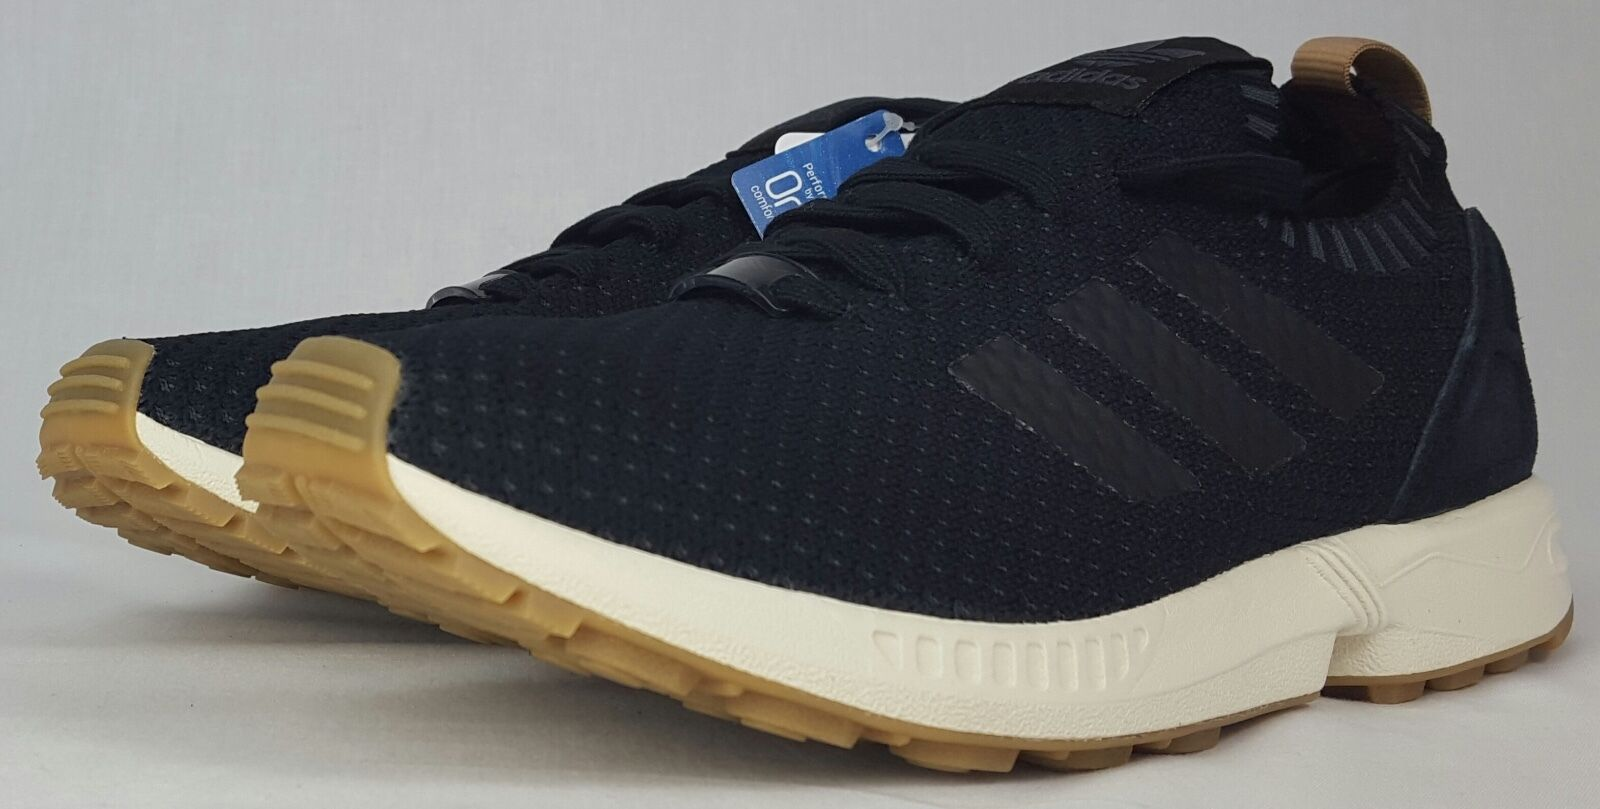 BRAND NEW ADIDAS 2X FLUX PK SIZE 9-11 PRICE  80 SERIAL  BA7371 FREE SHIPPING